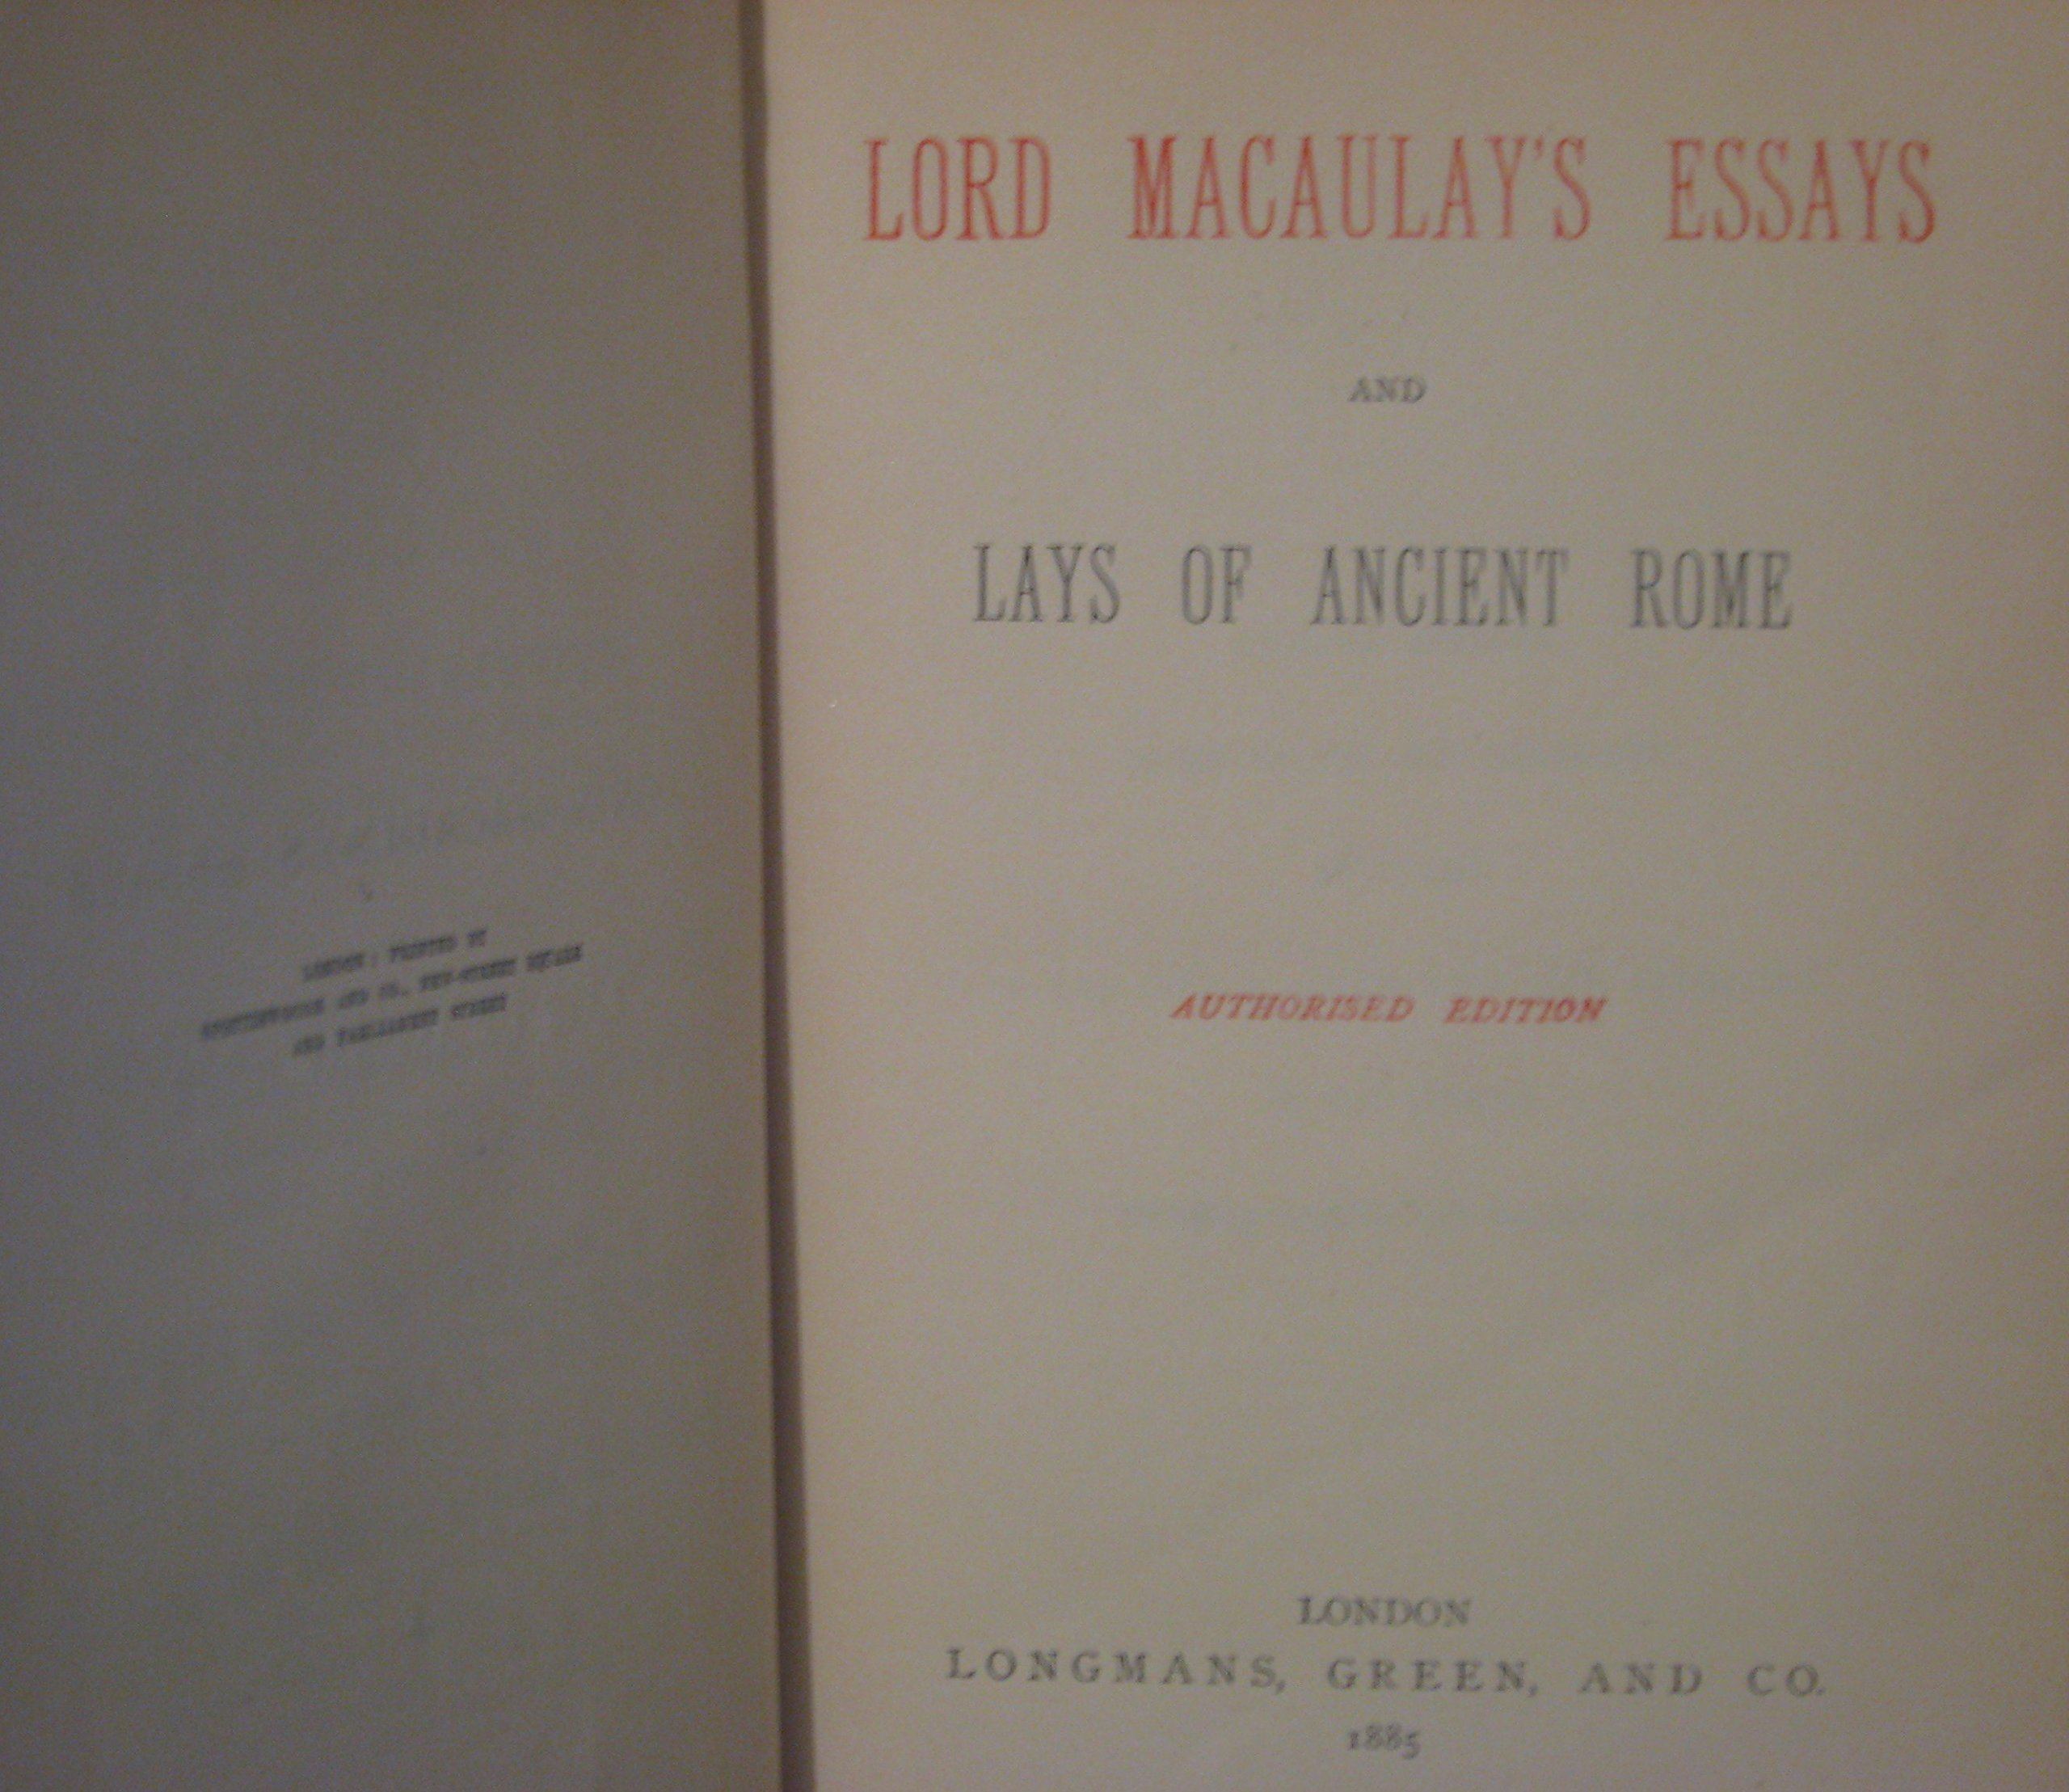 lord macaulay s essays and lays of ancient rome amazon co uk lord macaulay s essays and lays of ancient rome amazon co uk lord macaulay books